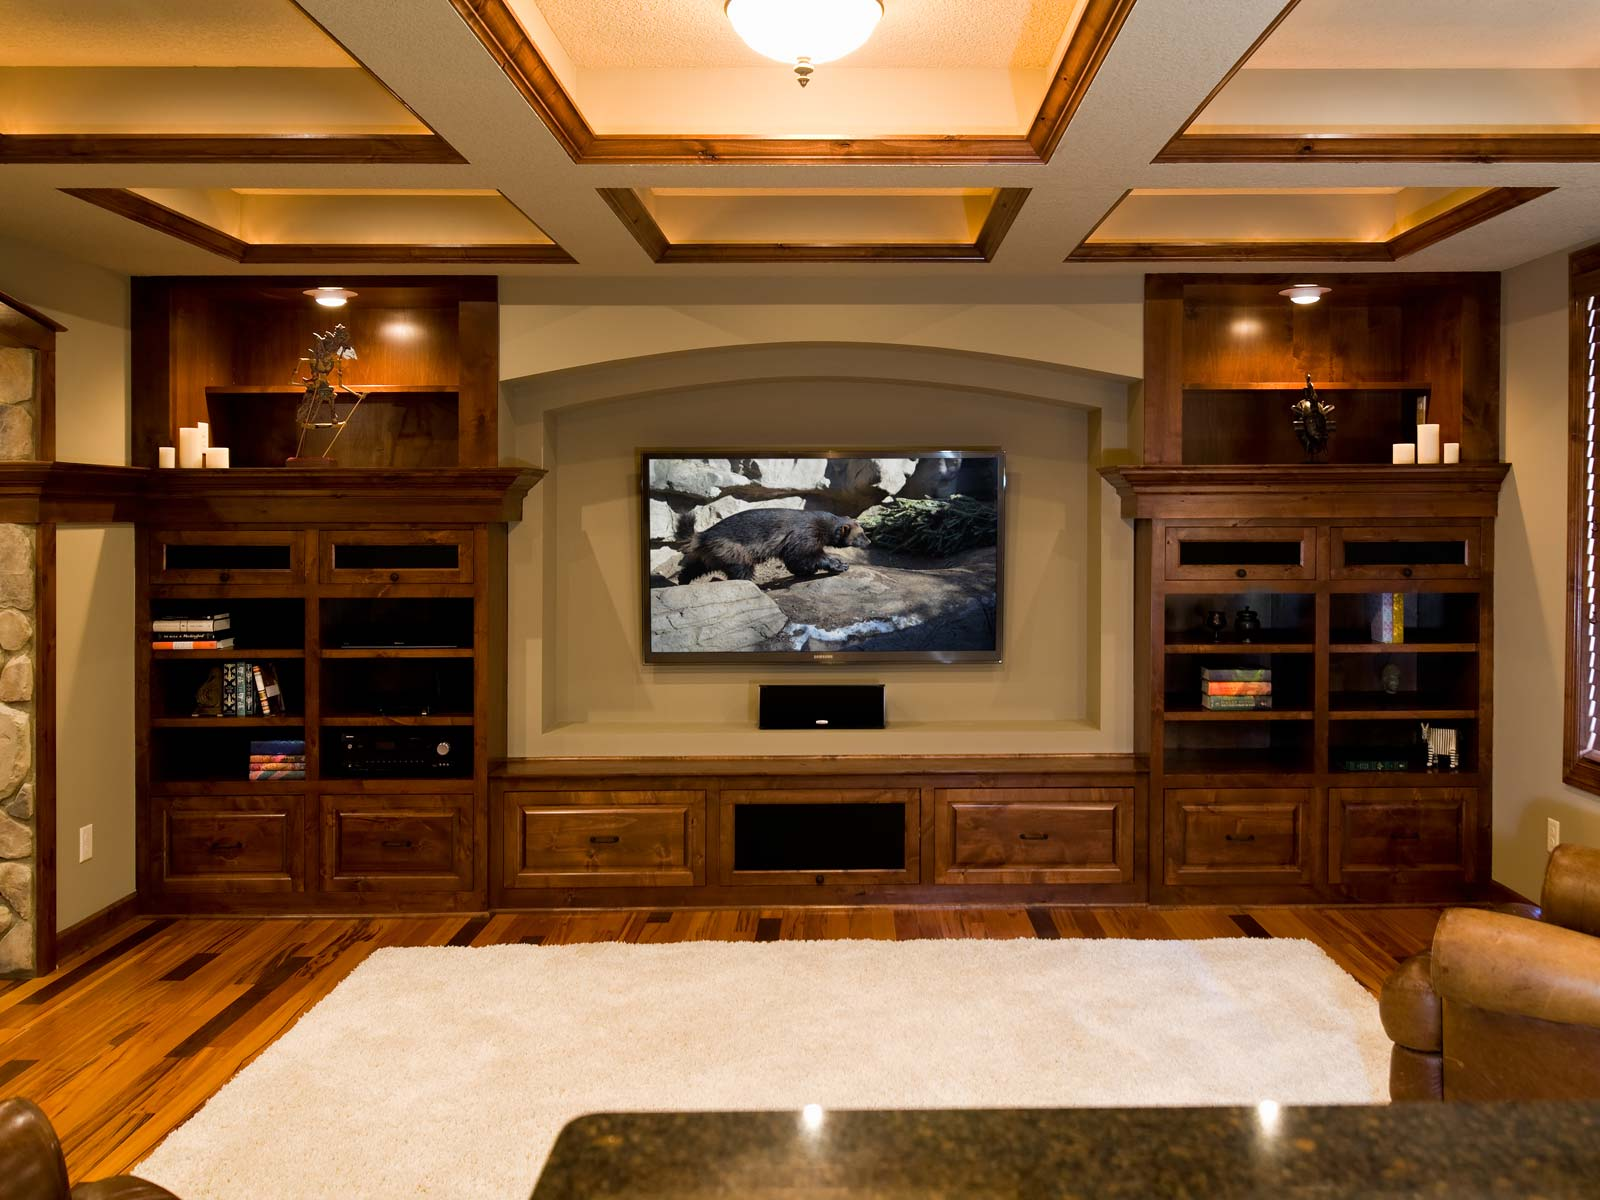 Amazing Of Low Ceiling Basement Remodeling Ideas 1000 Wall Mounted Tv Basement 1713352 Hd Wallpaper Backgrounds Download